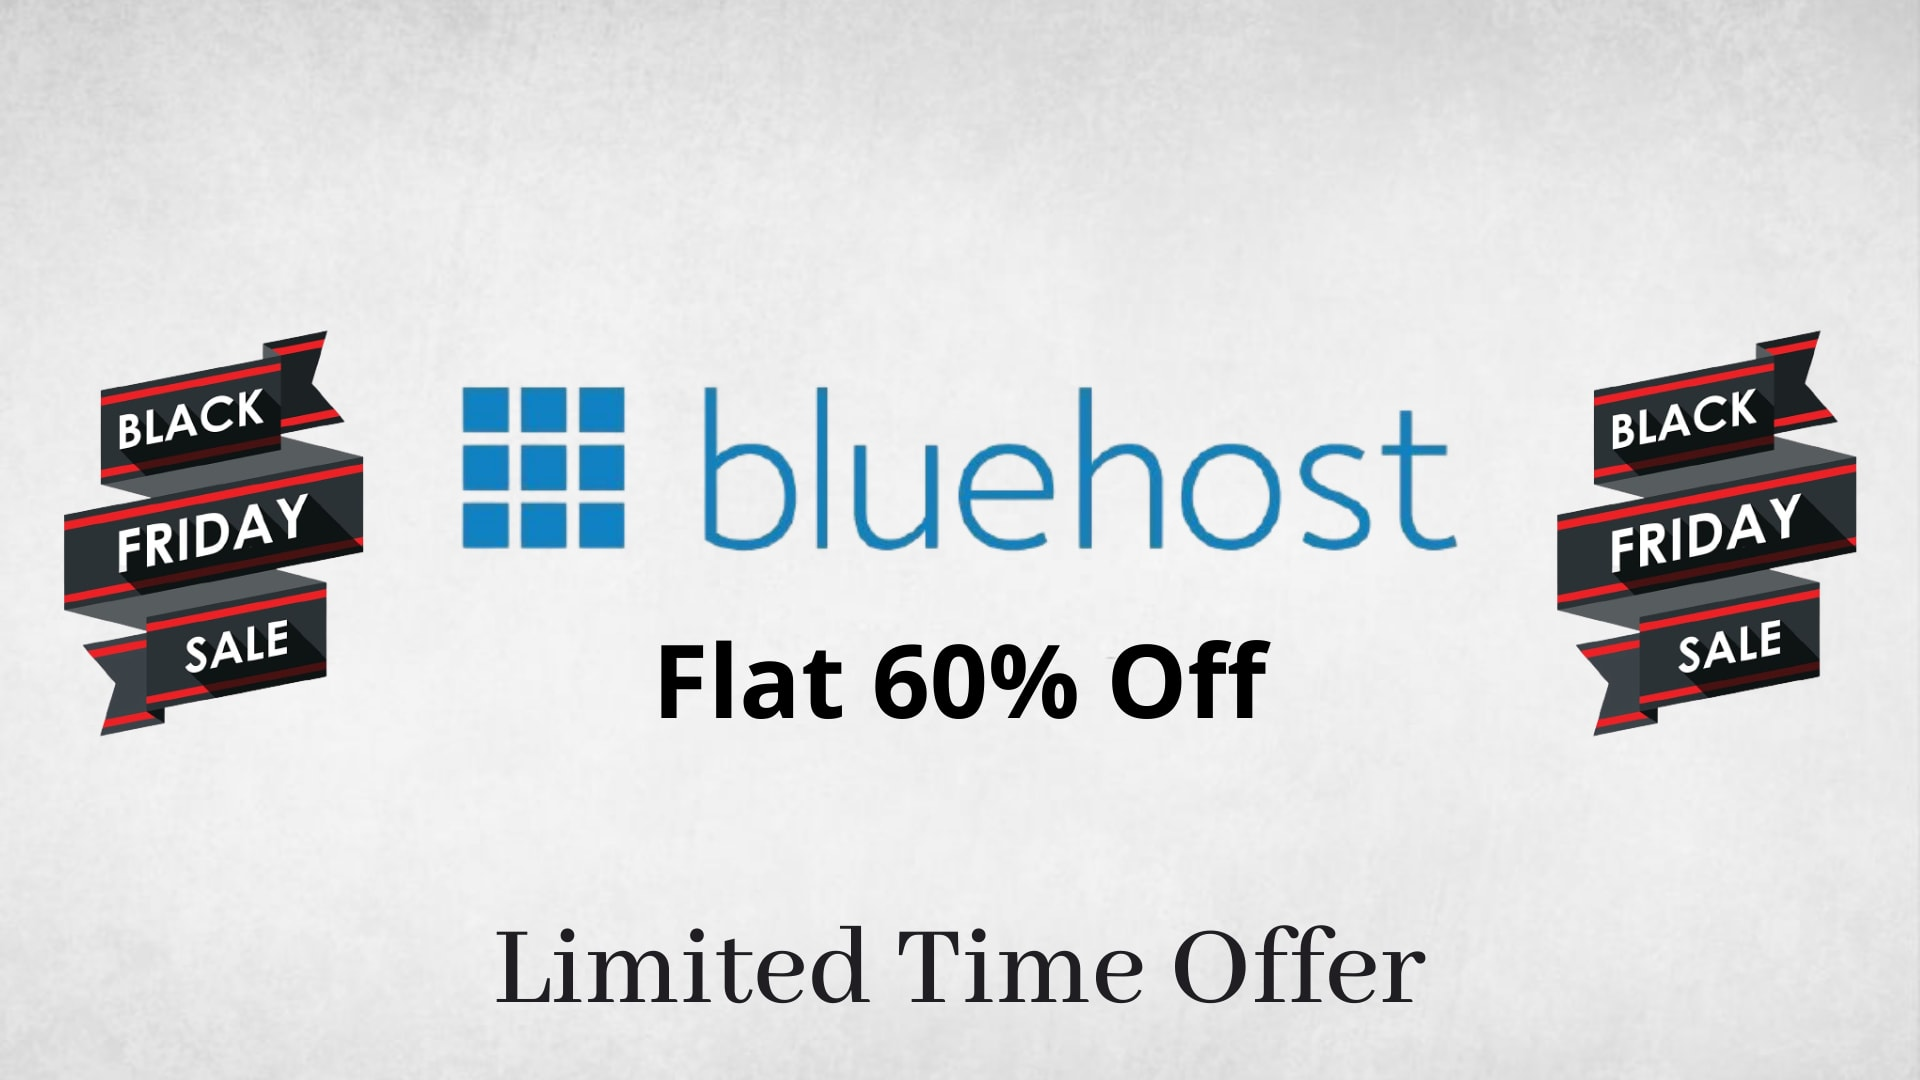 bluehost black friday deals 2020 - Top 10 Black Friday Hosting Deals 2020